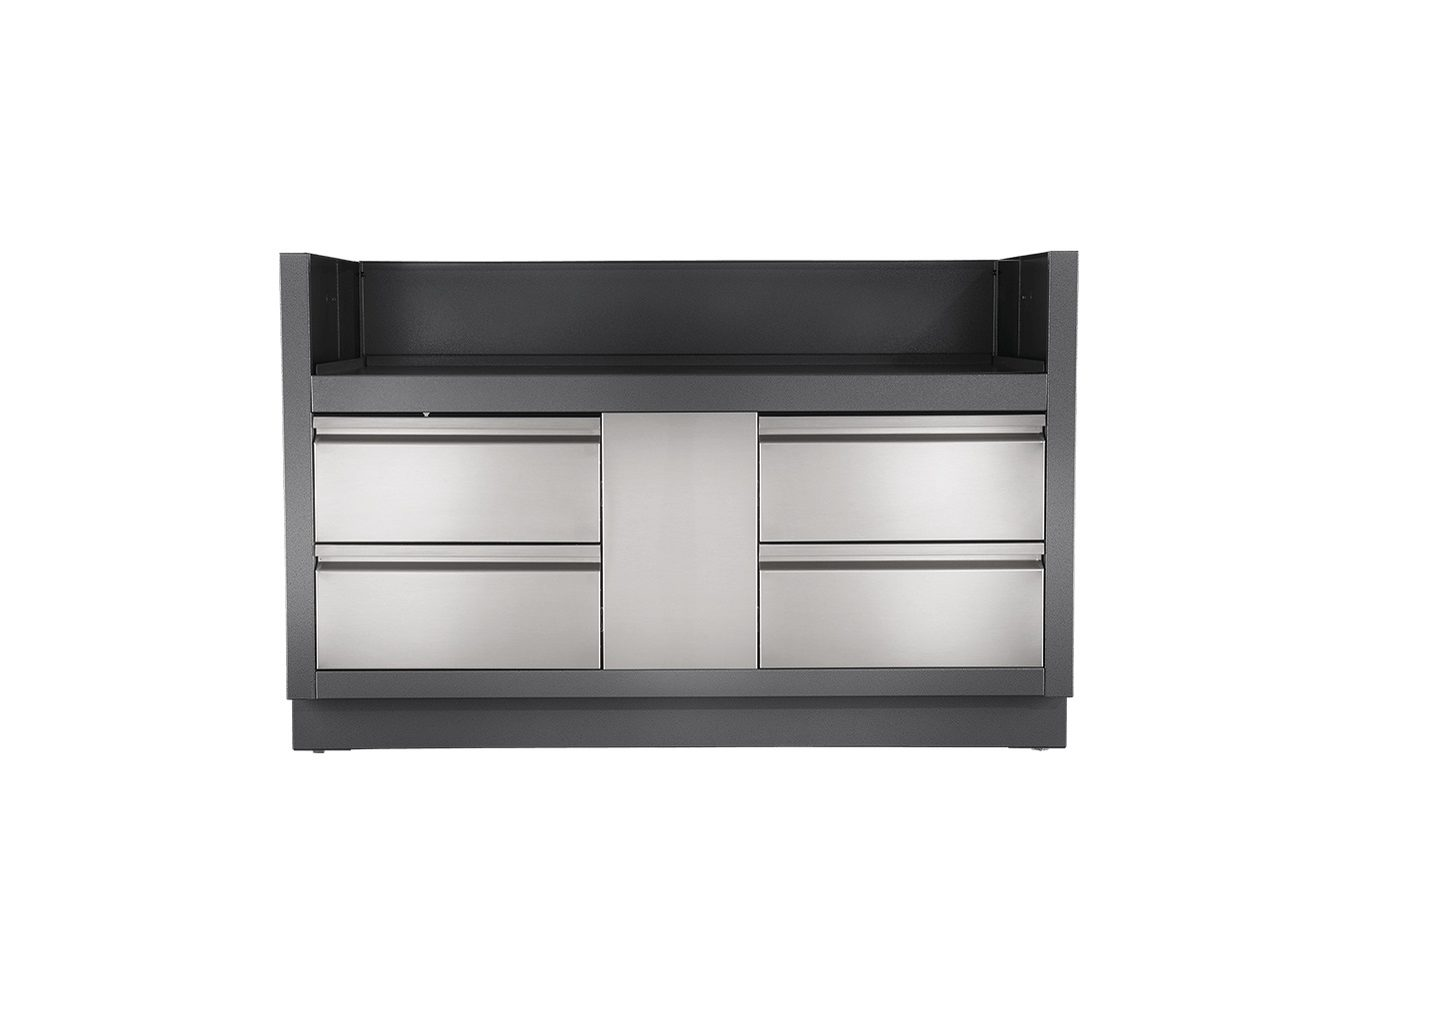 Under grill cabinet 825